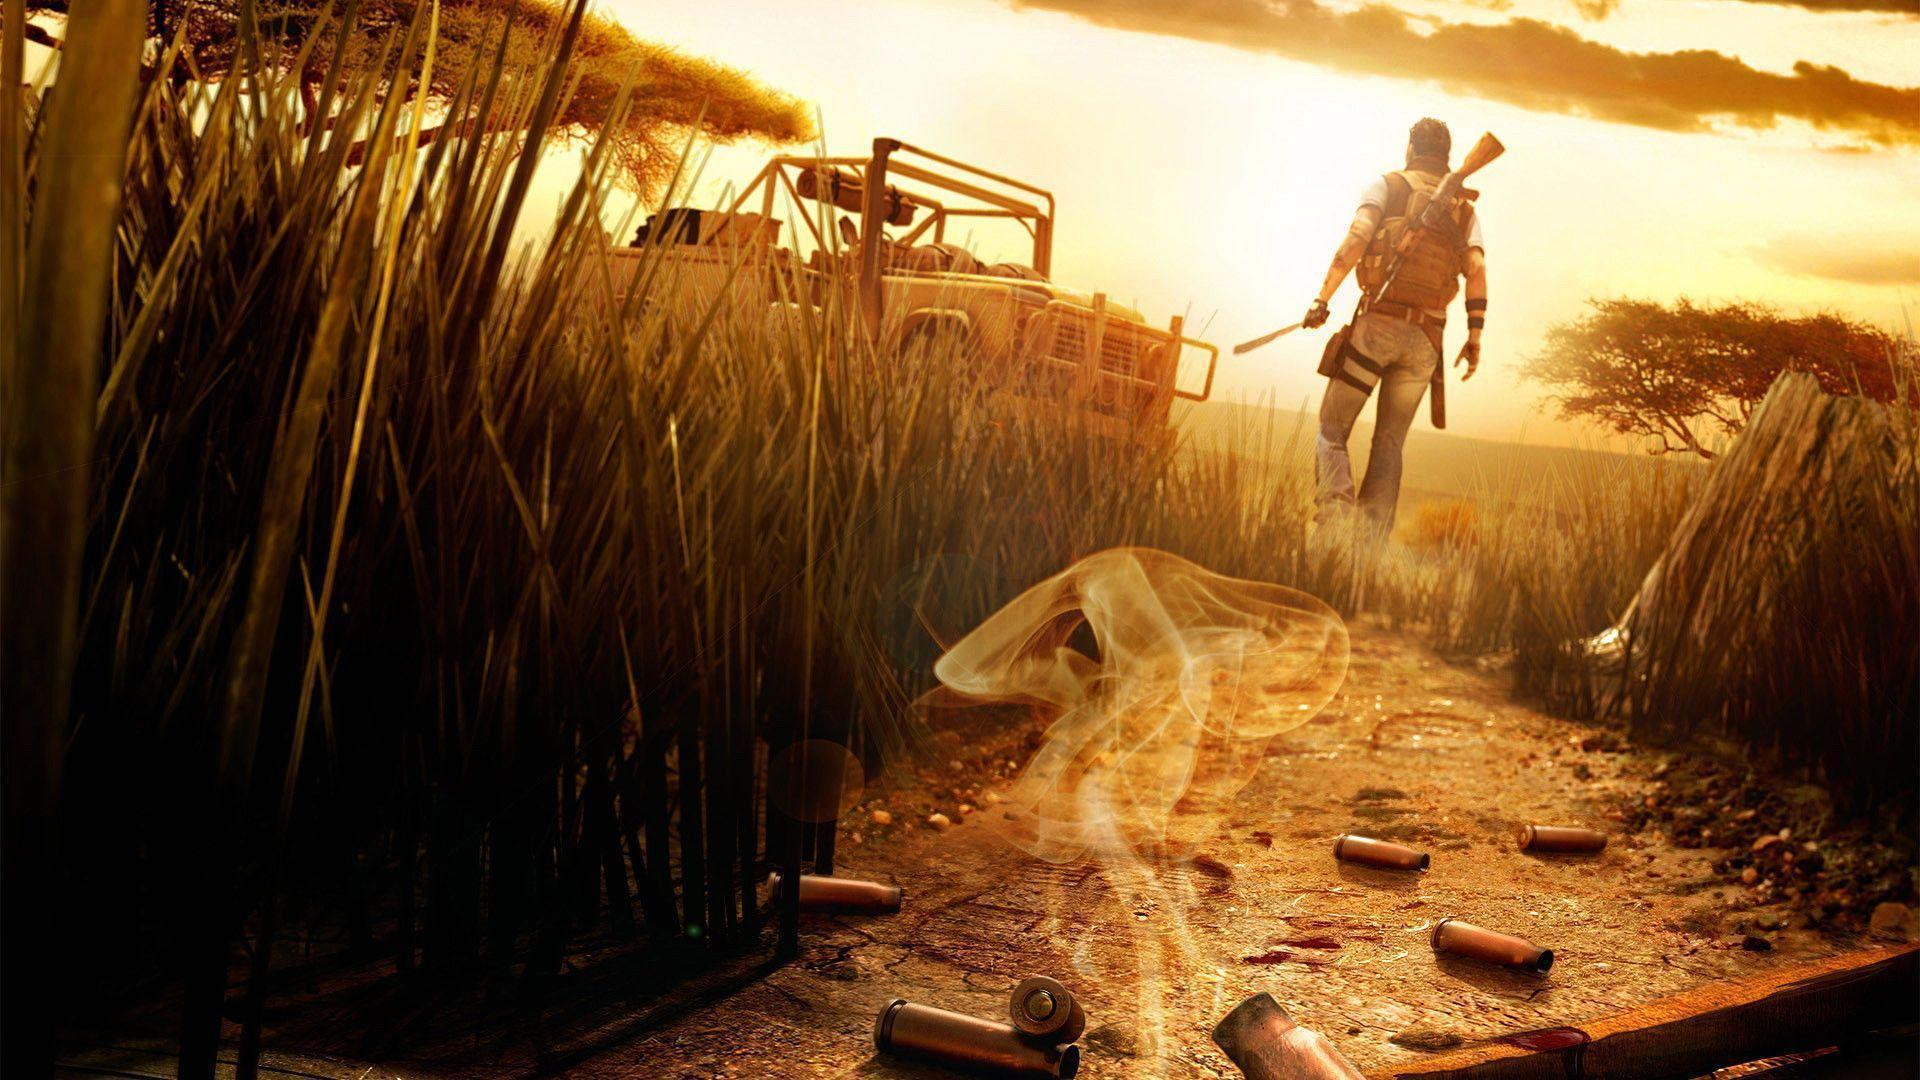 Far Cry 2 Wallpapers